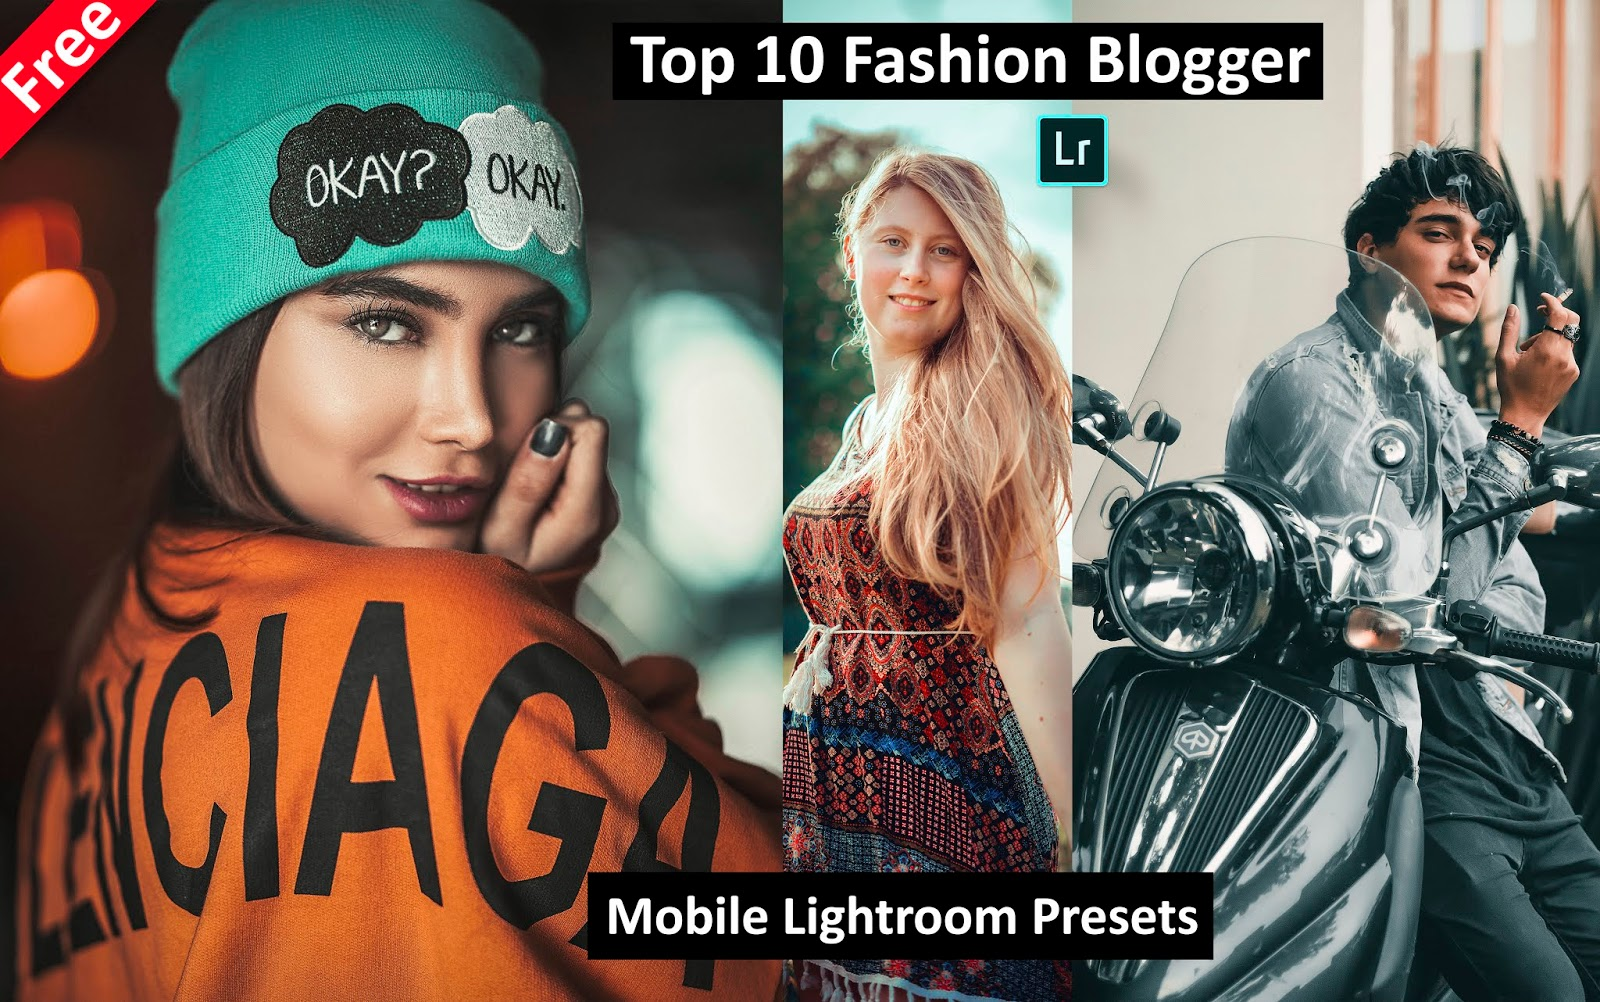 Download Top 10 Fashion Blogger Mobile Lightroom Presets for Free | How to Edit Fashion Portraits in Mobile Lightroom